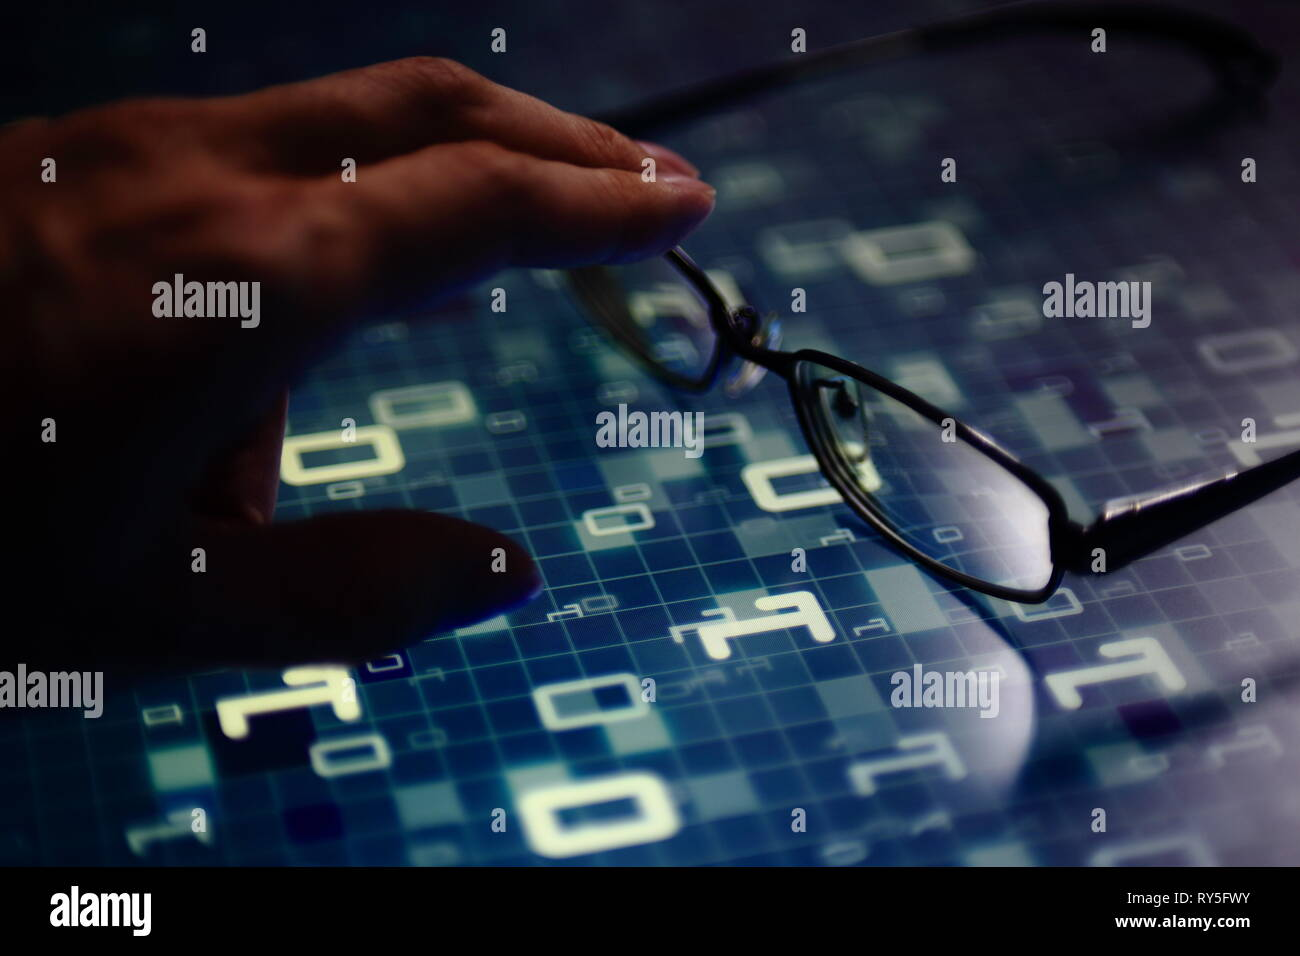 hand reaching for glasses on digital led displaying multiple layers of binary code computer data matrix. big data analytics and digital language conce - Stock Image